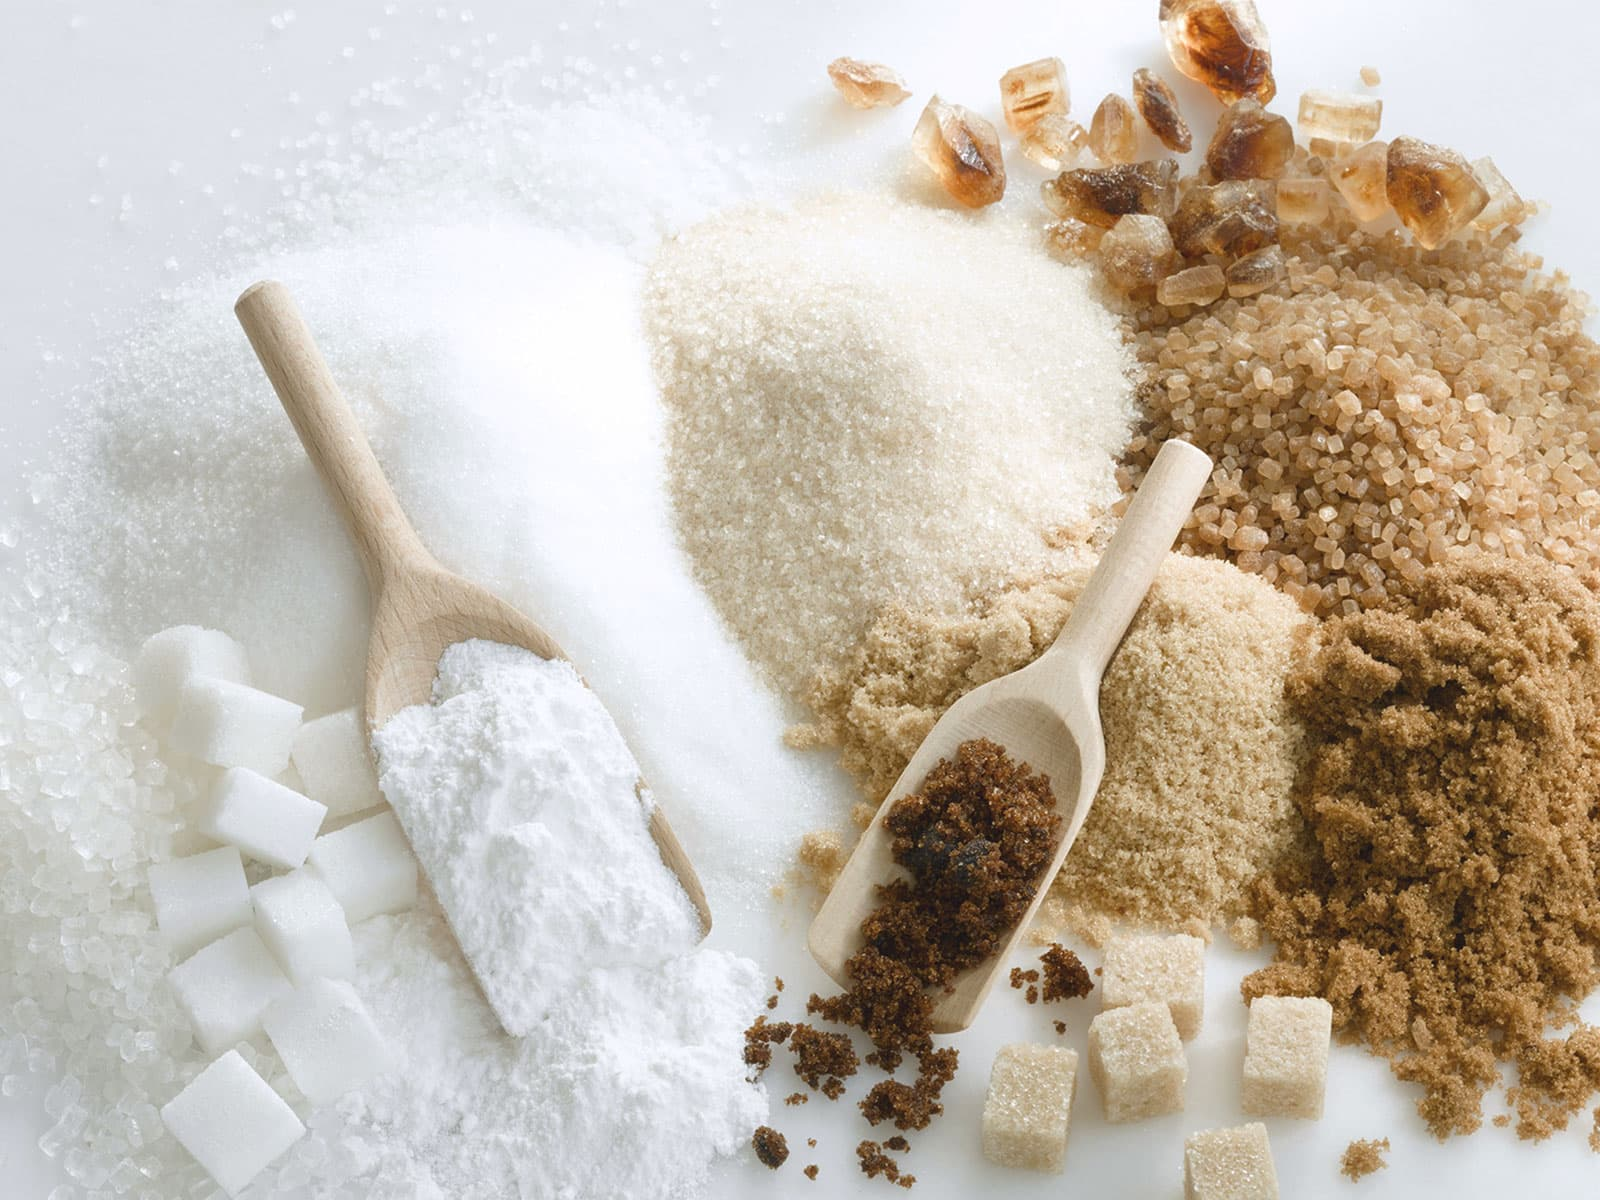 What is Sugar? How do types of sugar affect baking